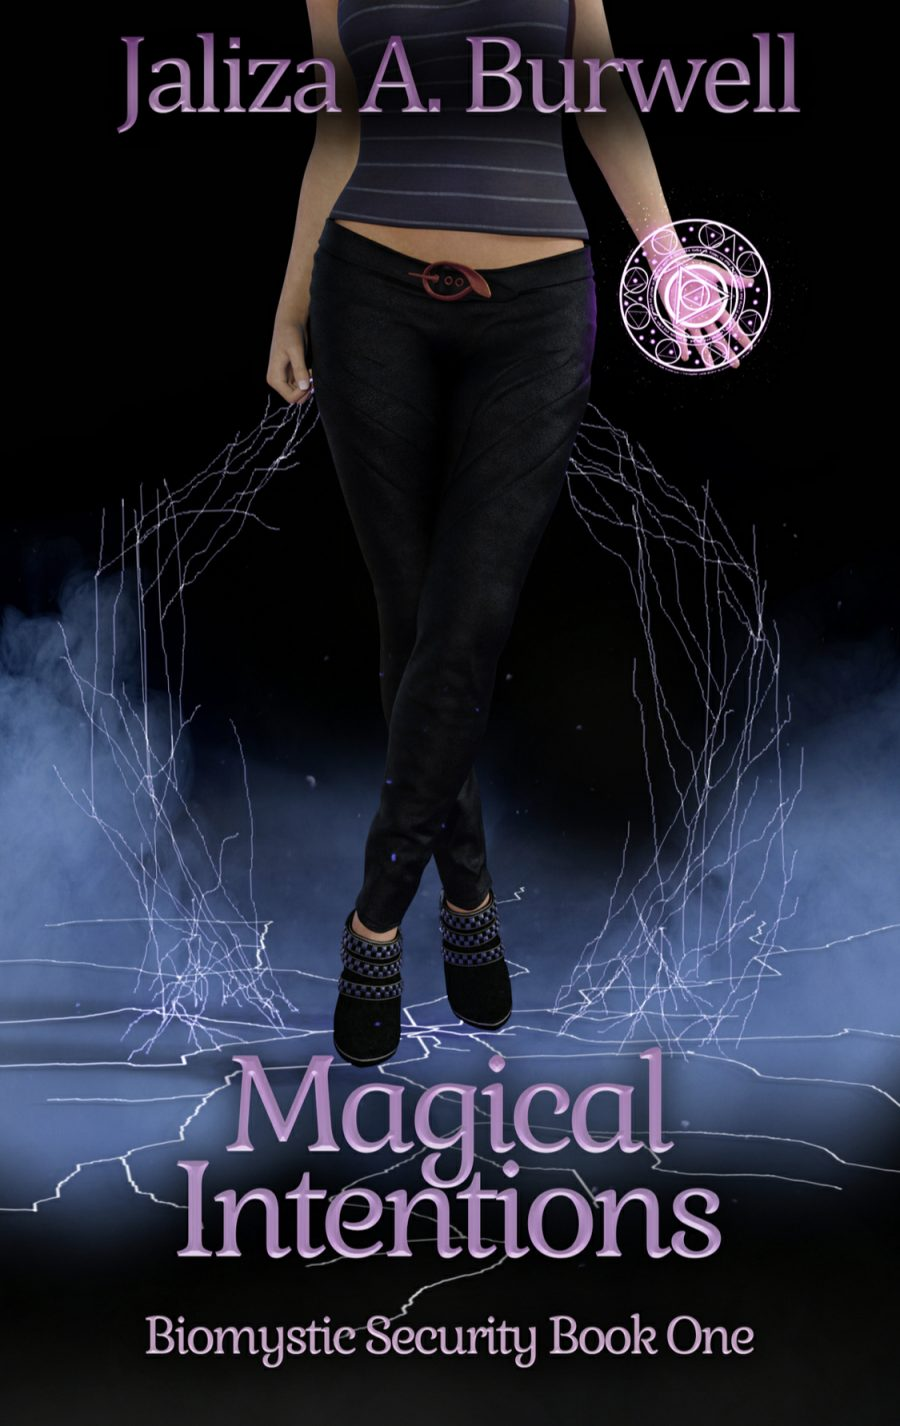 Magical Intentions by Jaliza A. Burwell - A Book Review #BookReview #UrbanFantasy #SlowBurn #RH #ReverseHarem #WhyChoose #PNR